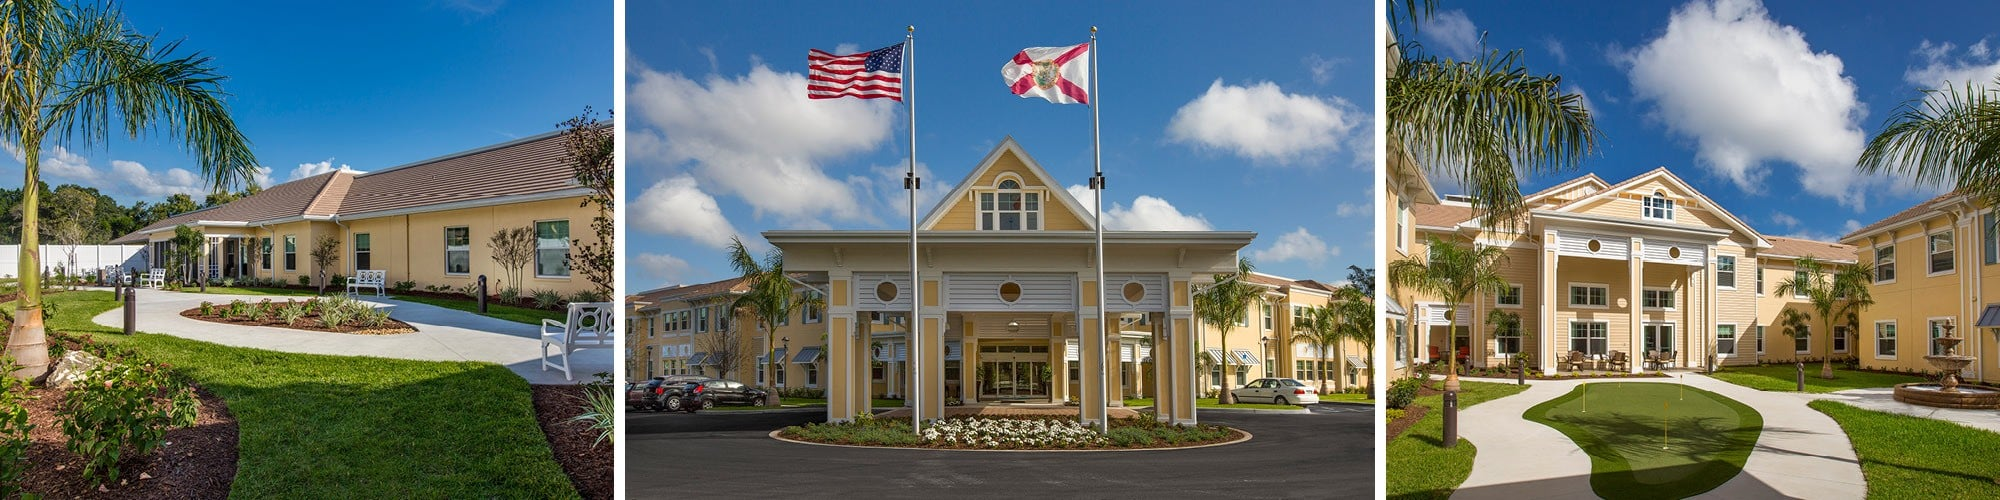 Request a Sarasota senior living facility brochure